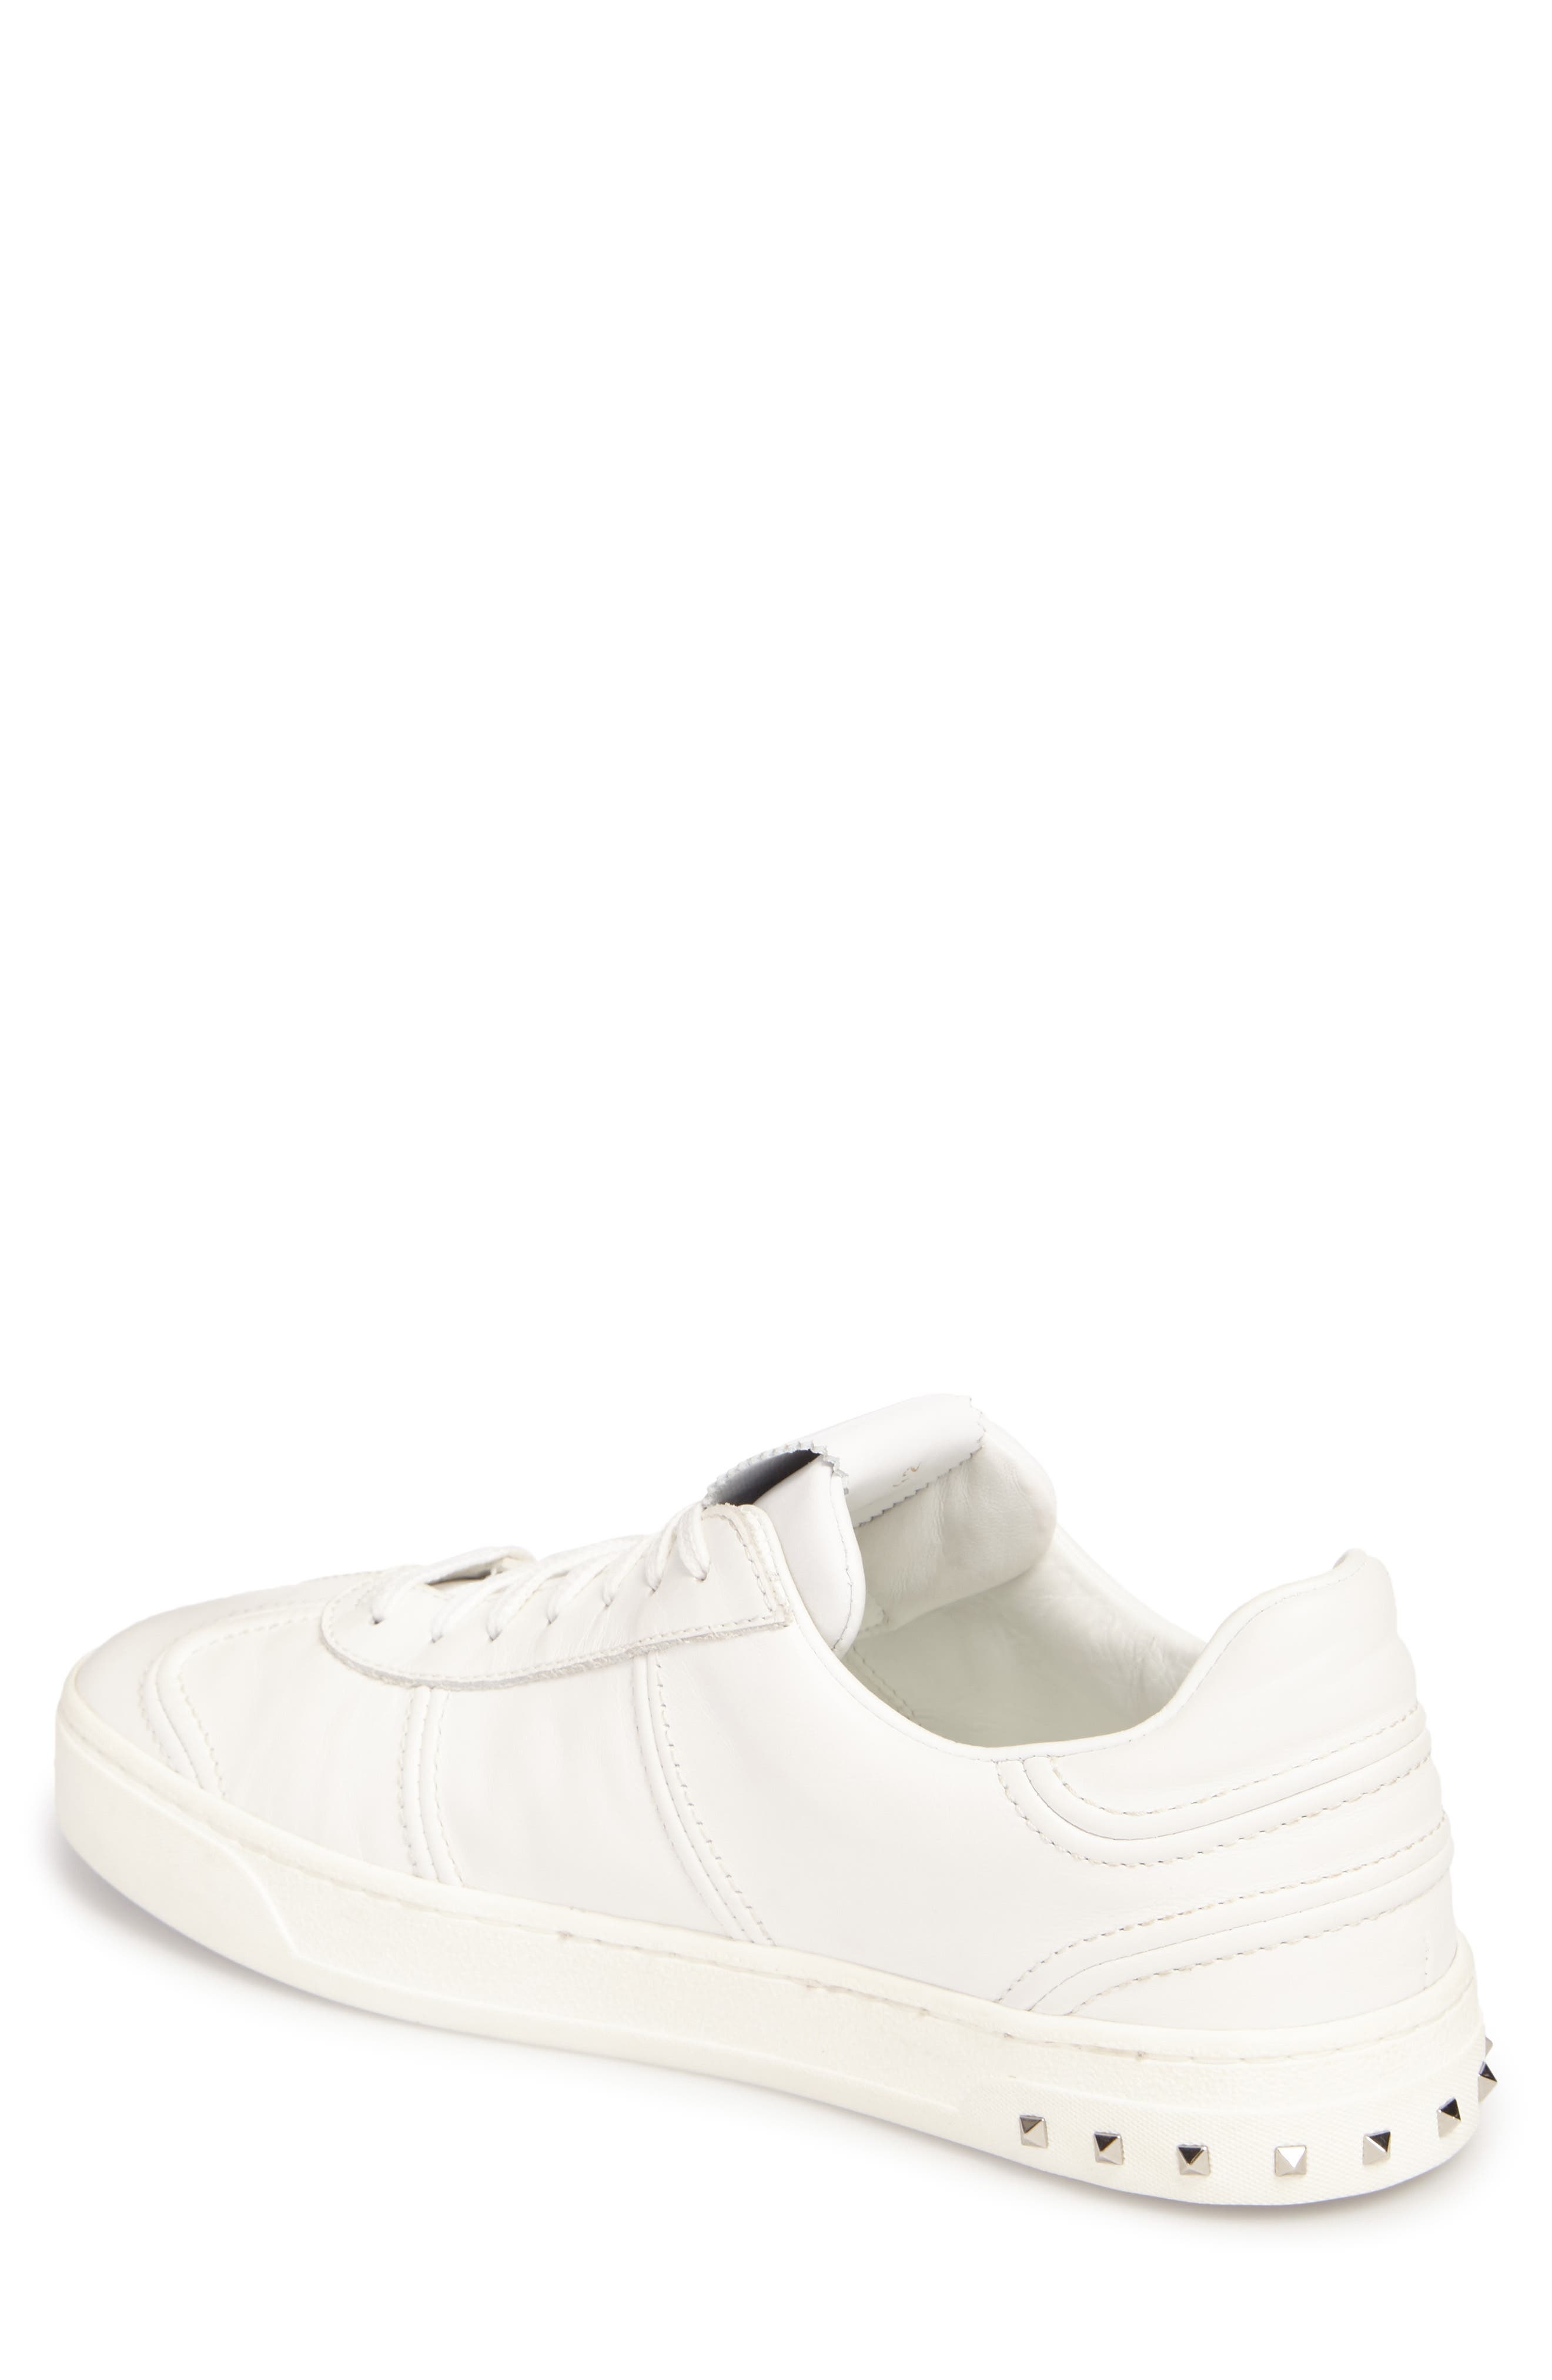 Nappa Fly Crew Sneaker,                             Alternate thumbnail 2, color,